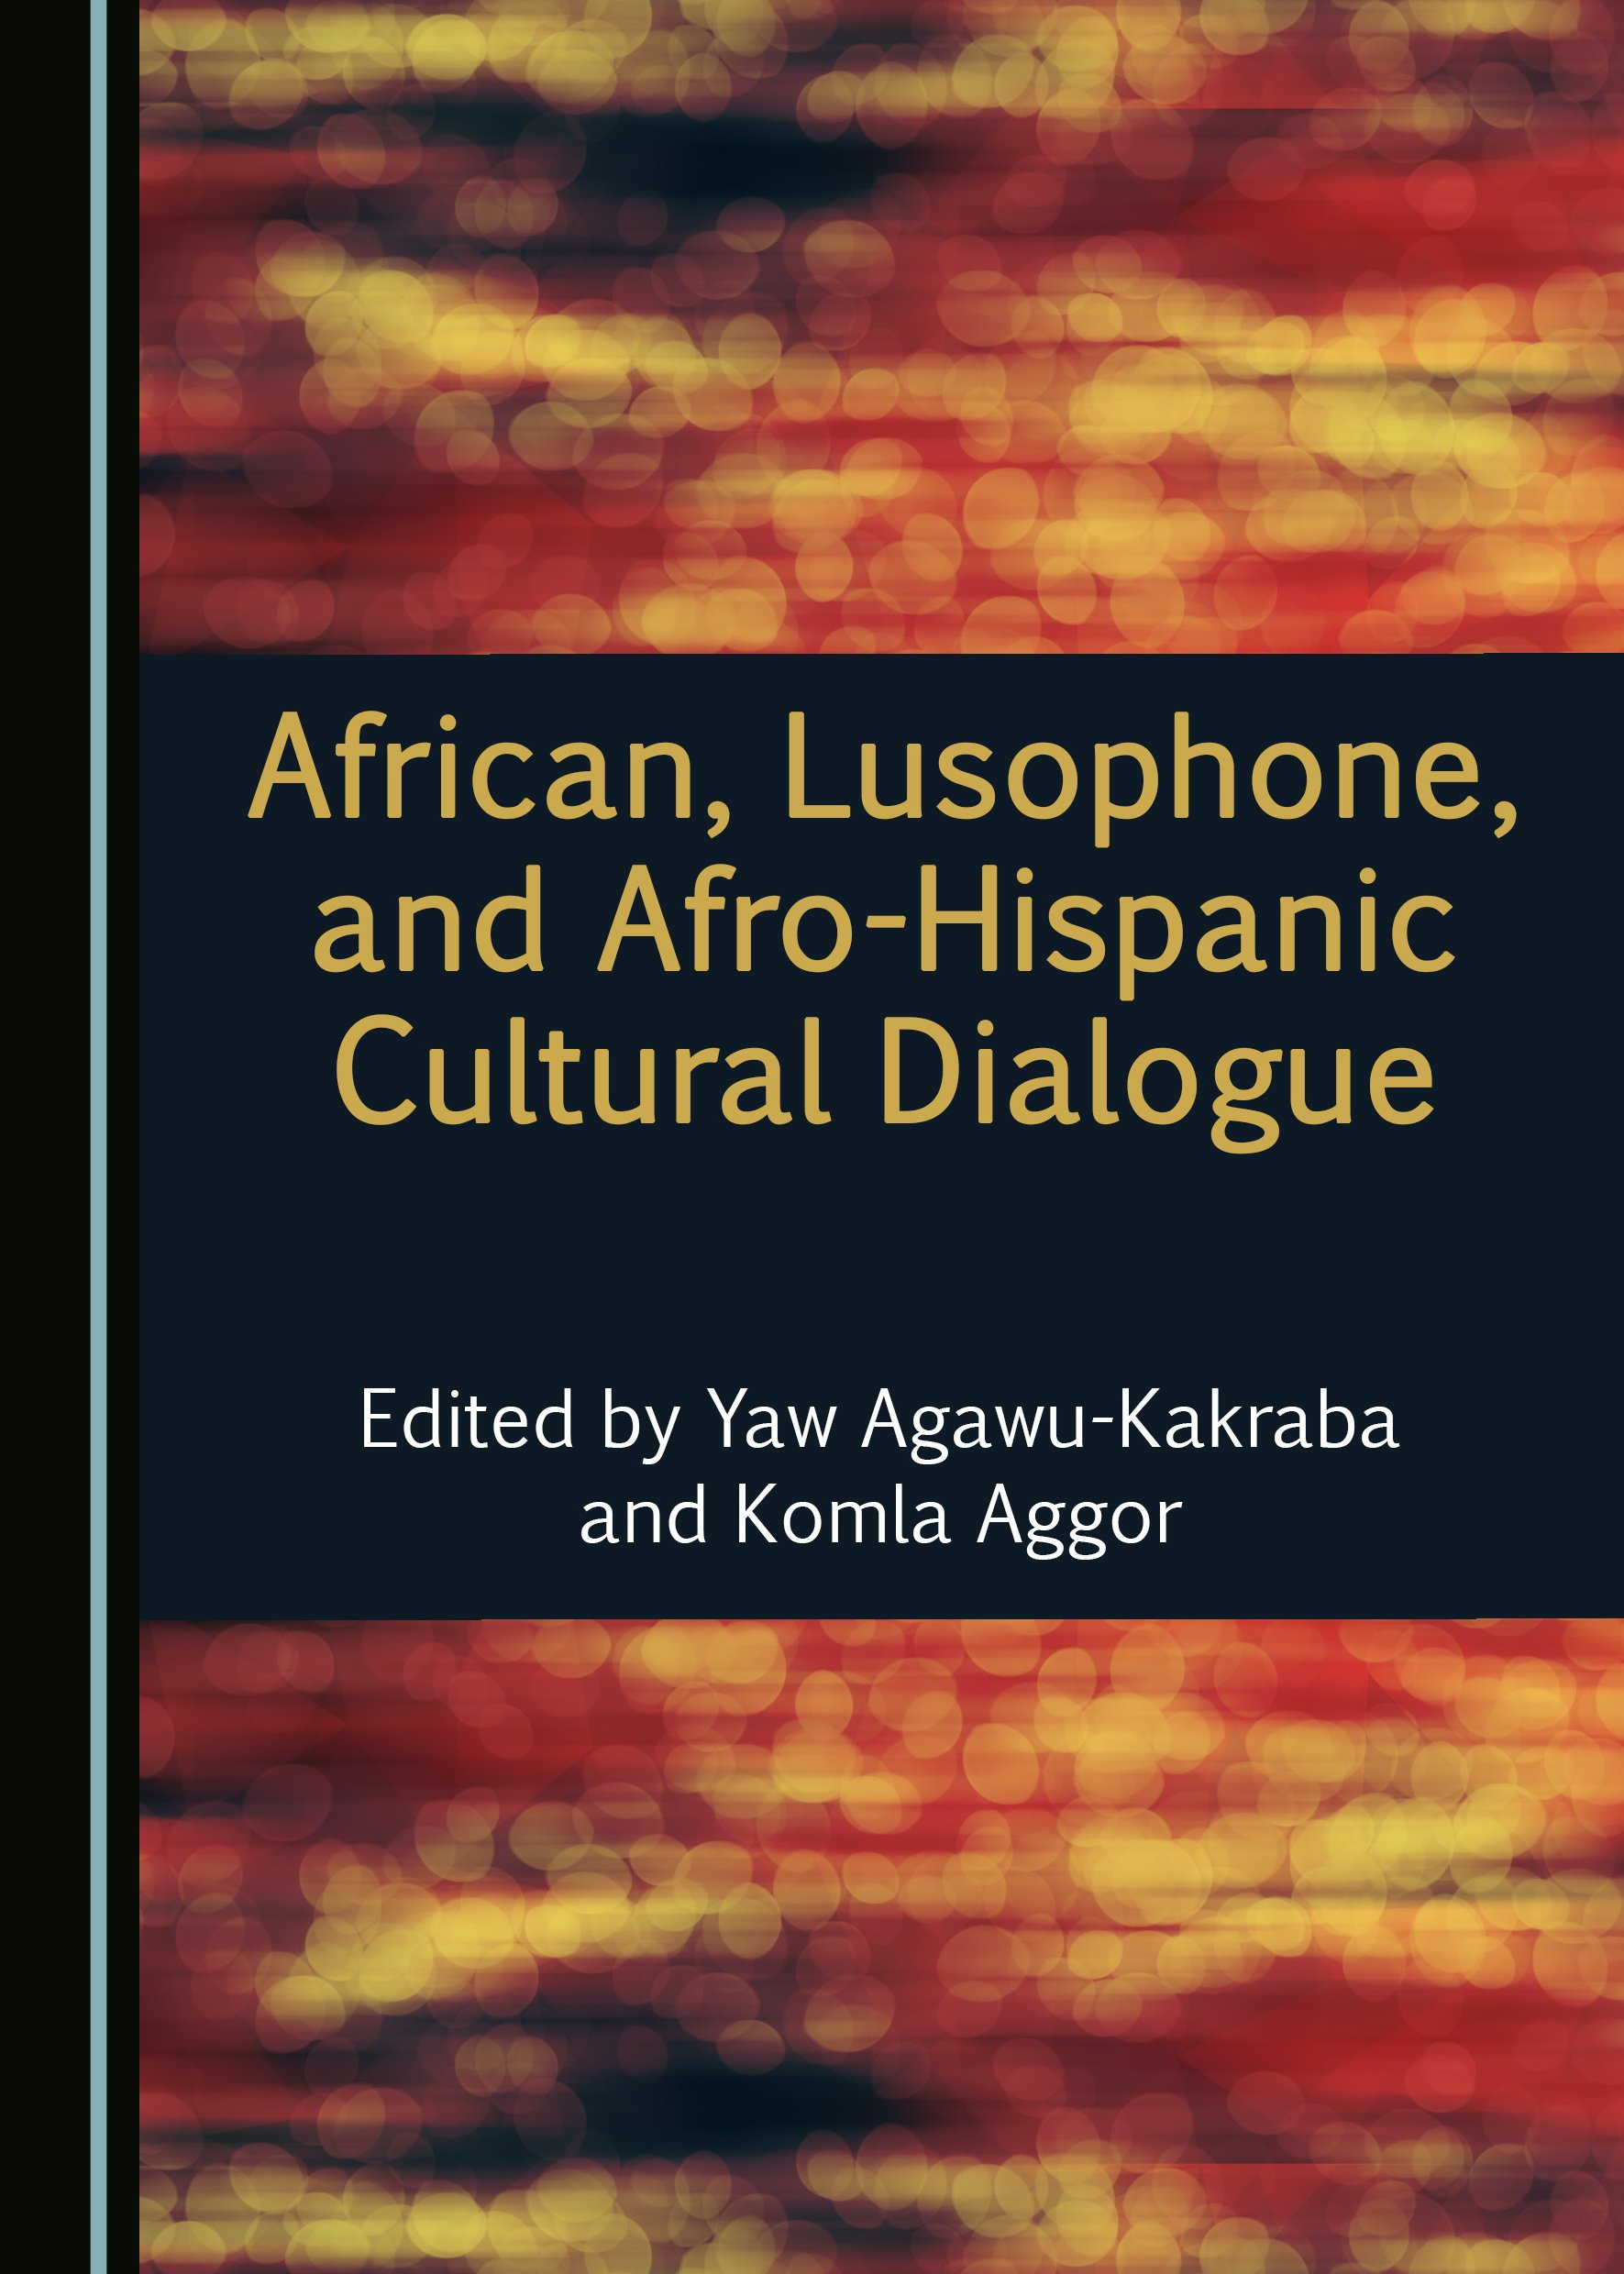 African, Lusophone, and Afro-Hispanic Cultural Dialogue